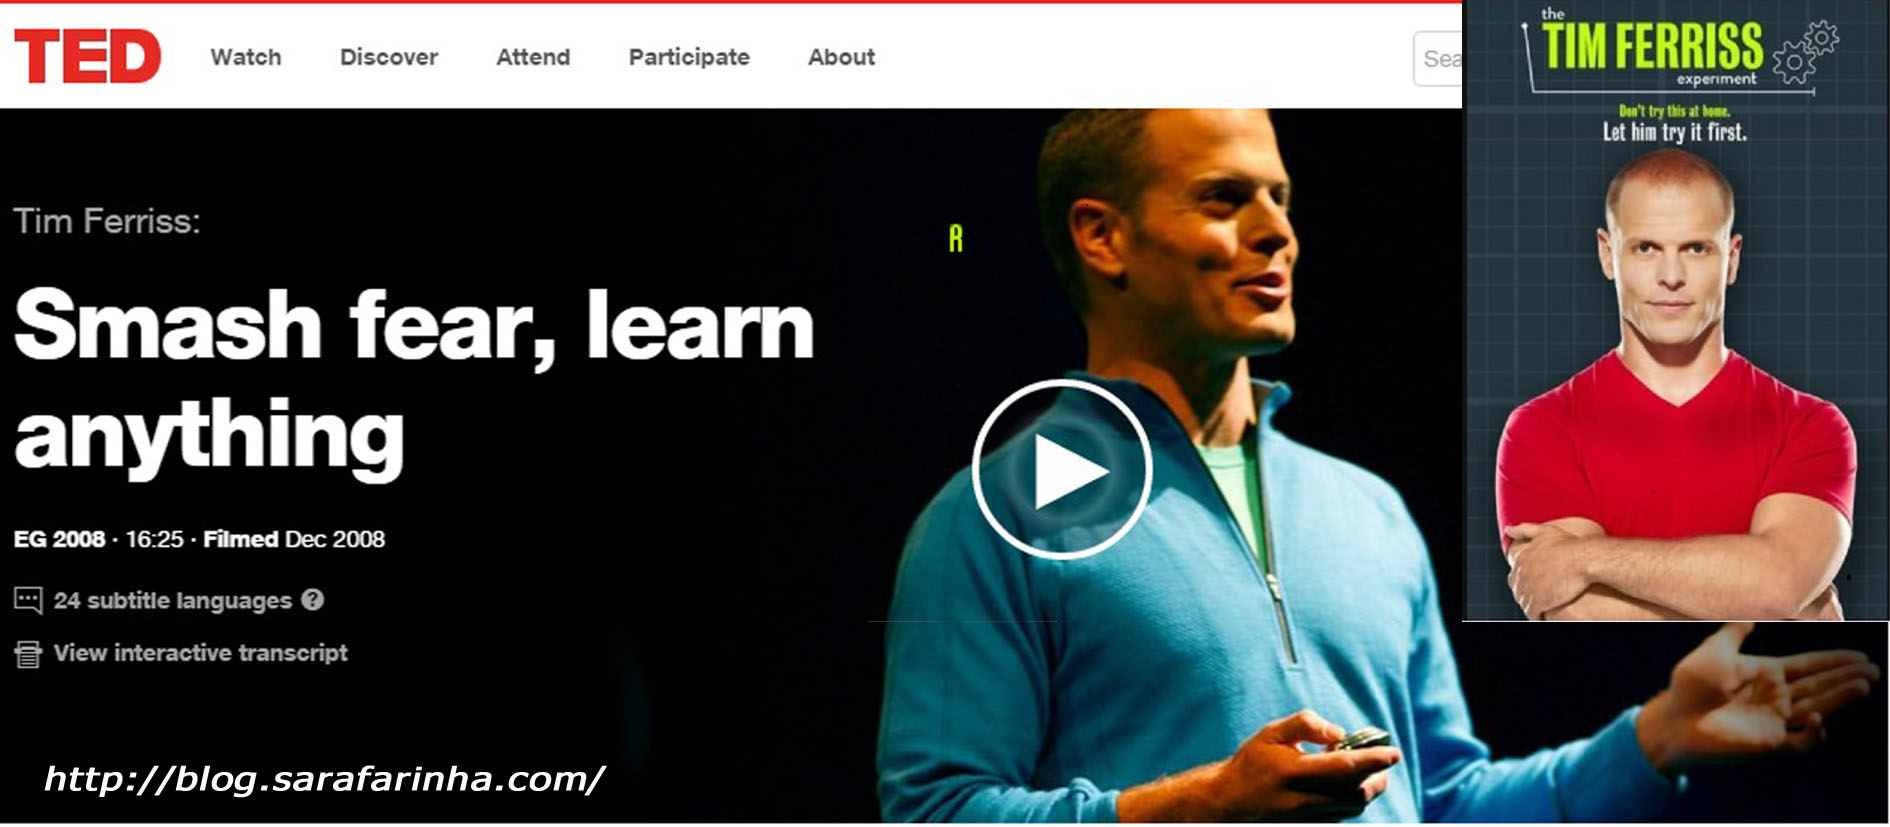 Tim Ferriss TED